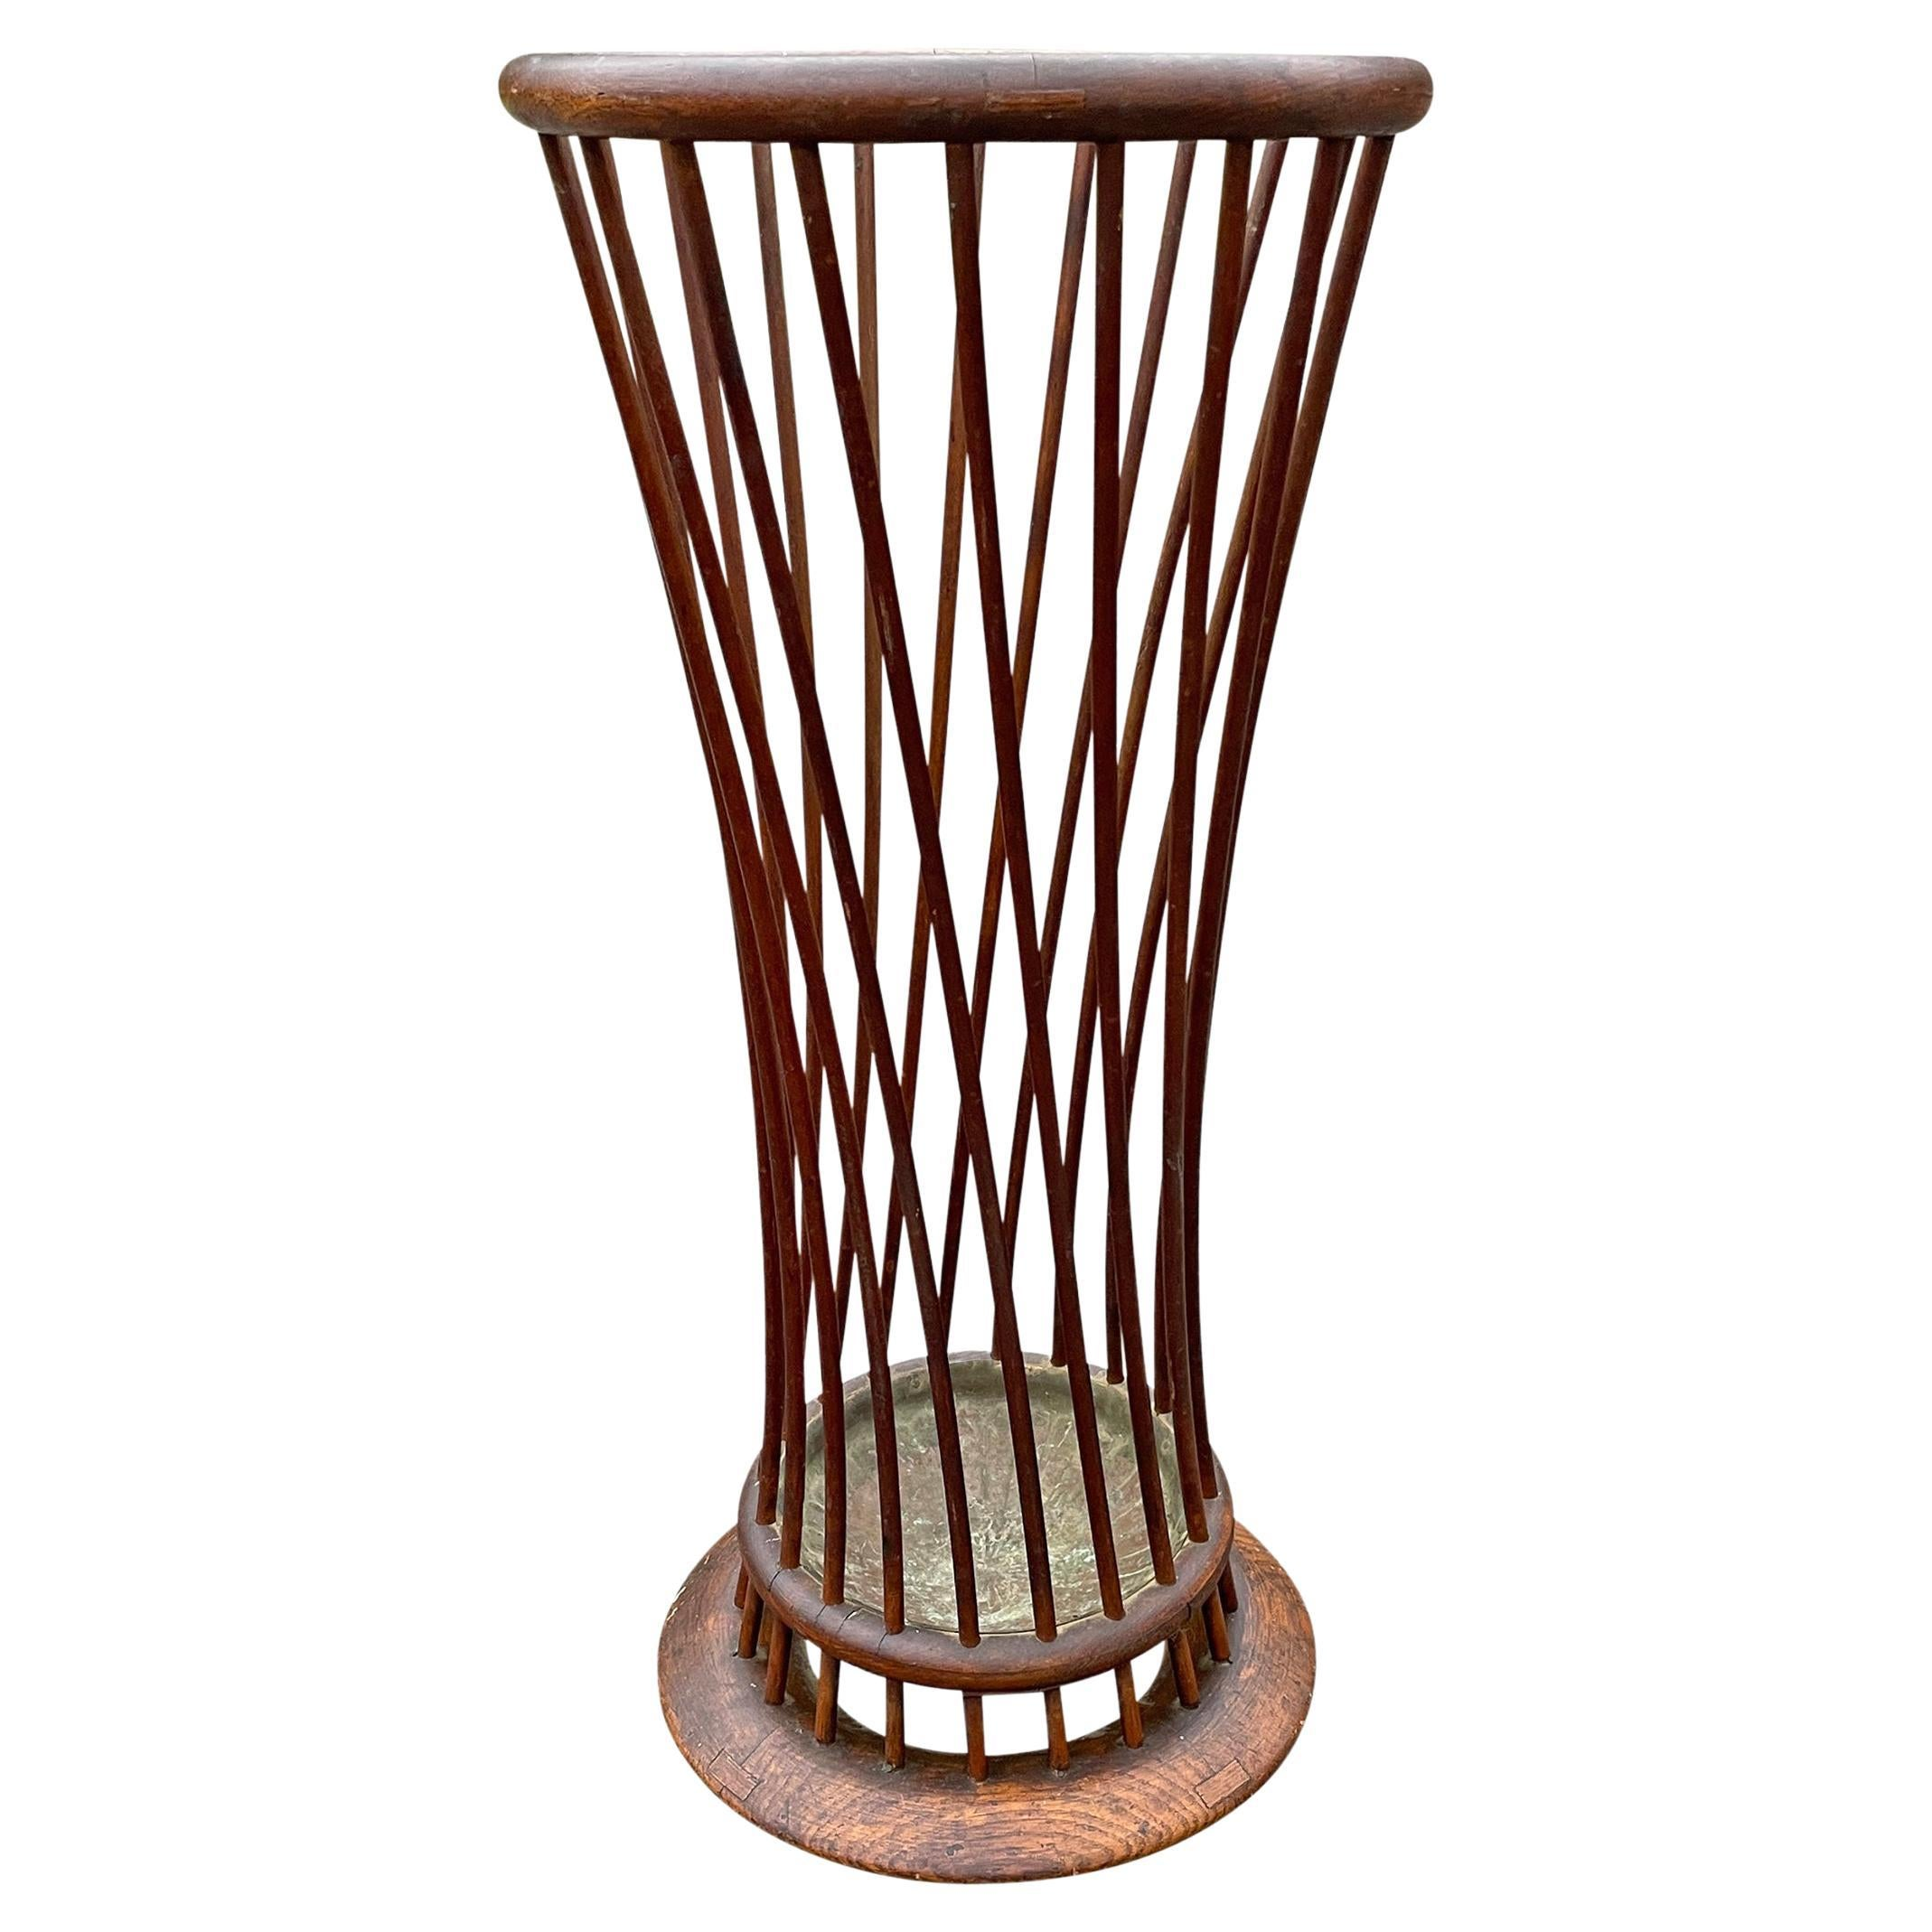 Early 20th Century Umbrella Stand